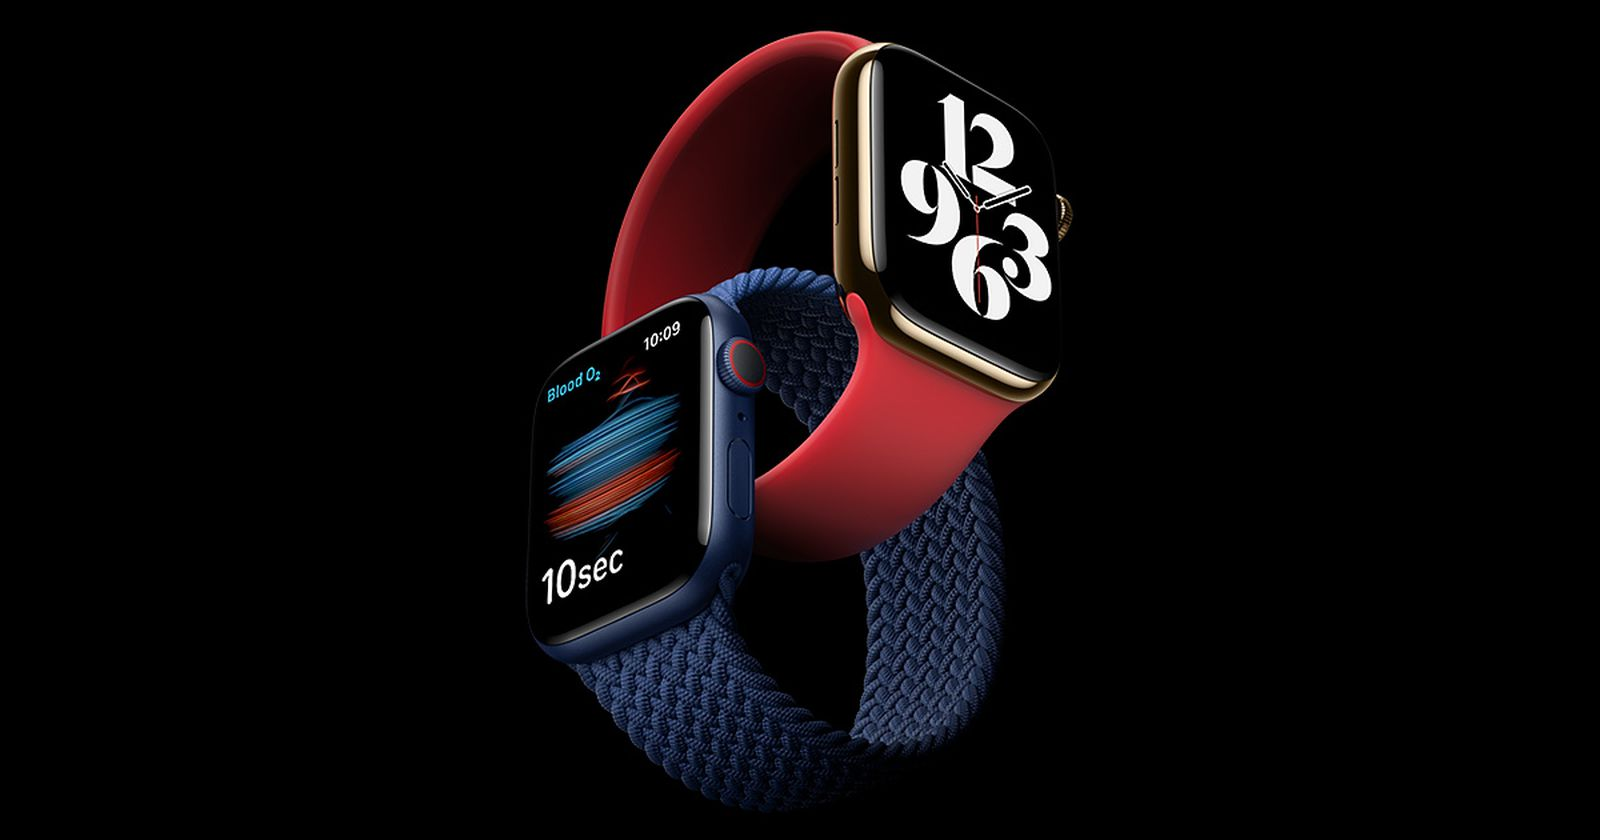 Bloomberg: Apple Watch Series 7 to Feature Thinner Screen Bezels, Faster Processor, and Updated Ultra Wideband Tech